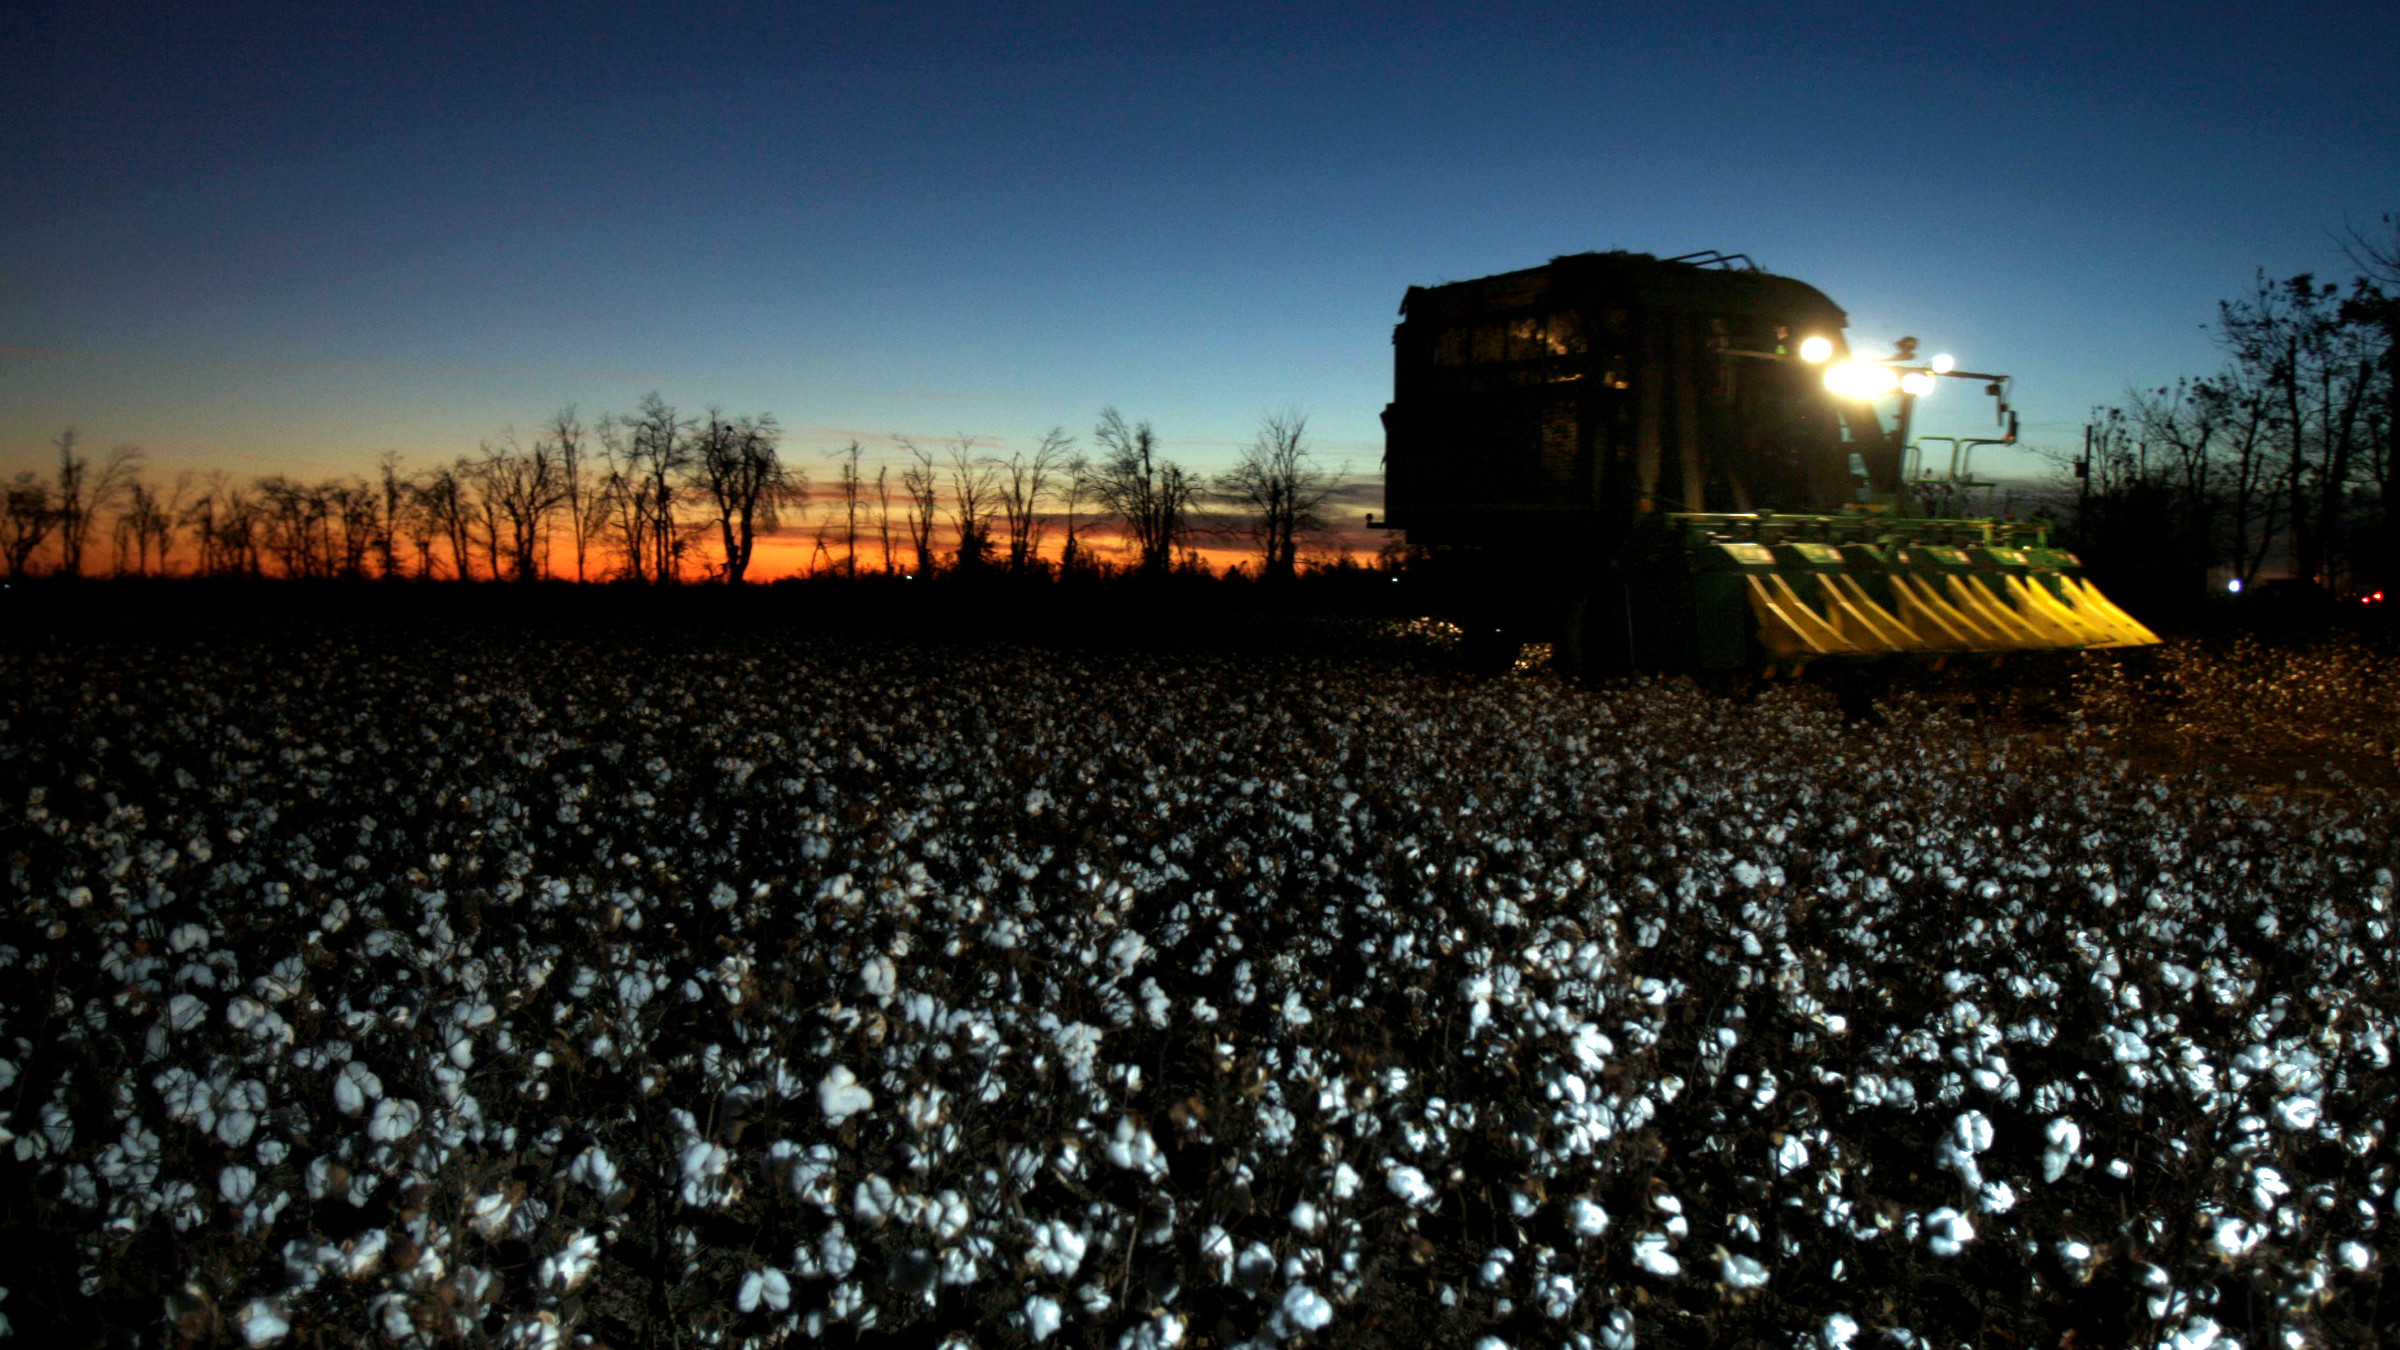 Rick Faulkner and his wife Cindy pick cotton on their land Wednesday, Nov. 11, 2009, in New Madrid, Mo.  The Faulkner's land sits at the bottom of Missouri's boot heel, an area that connects this Midwestern state to the Mississippi Delta and where the federal government pumps more than $12 million a year in cotton subsidies.